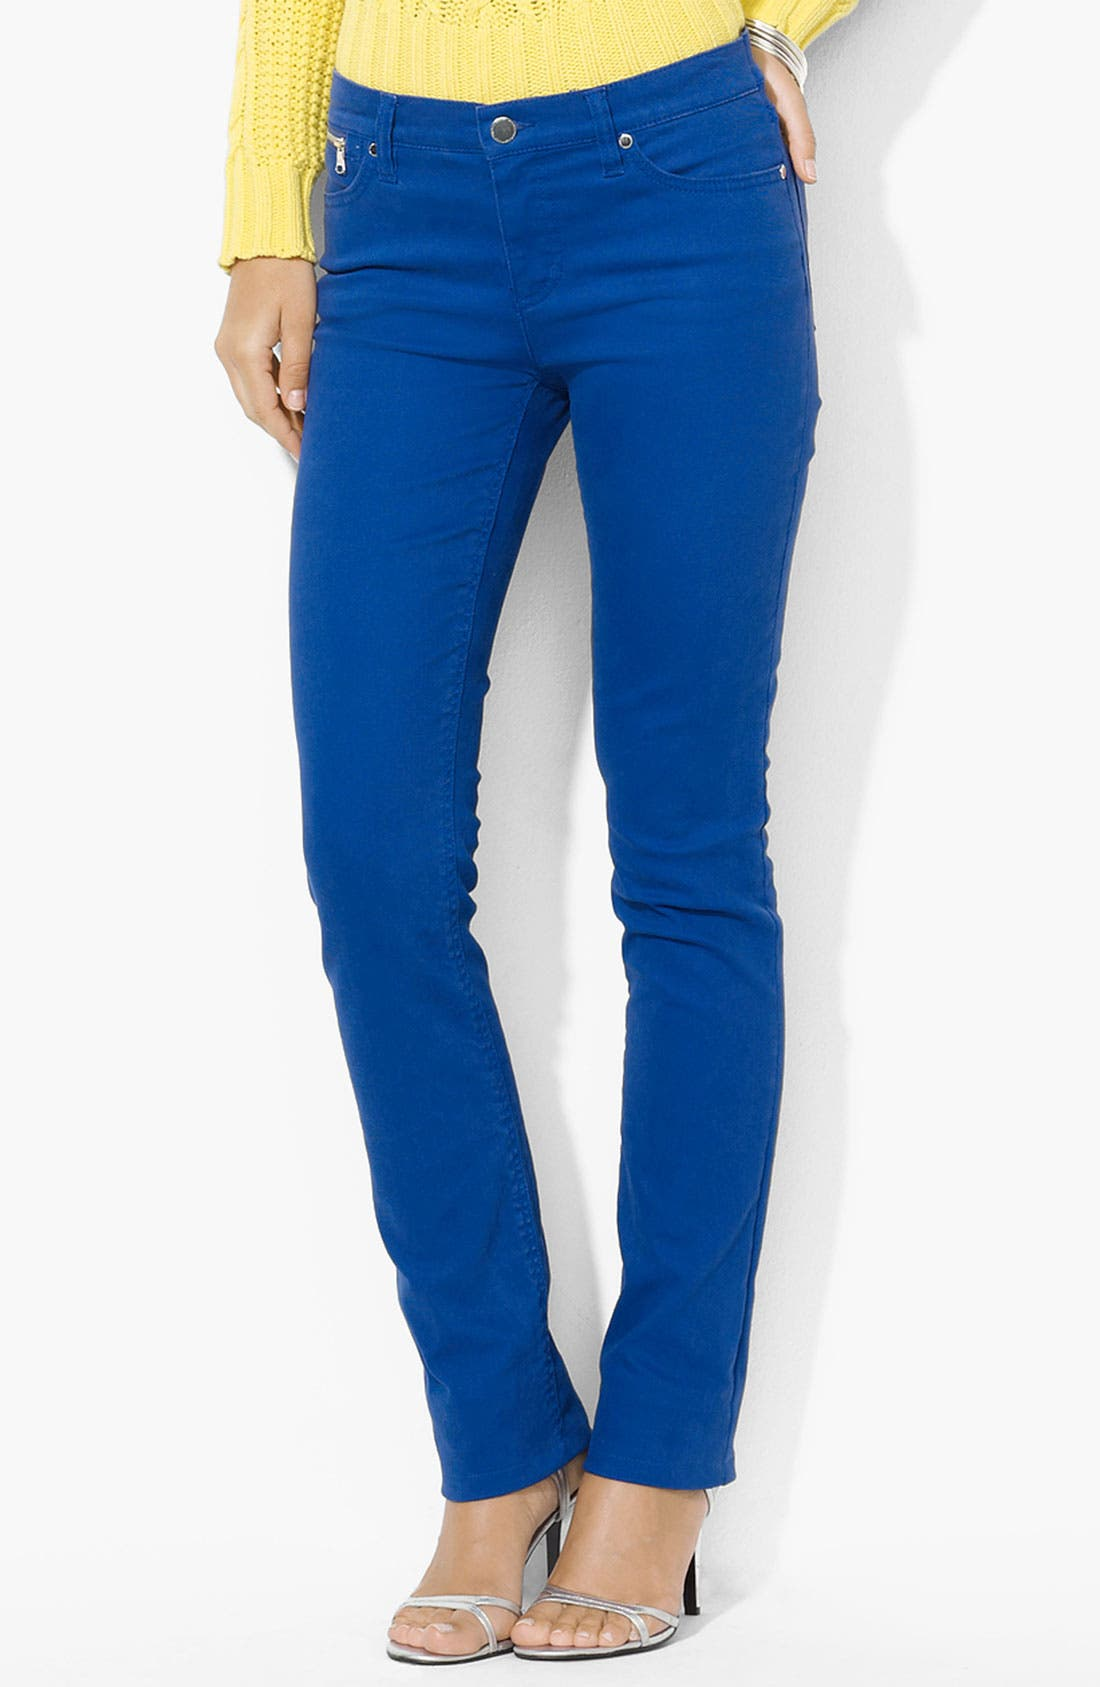 Main Image - Lauren Ralph Lauren Slim Straight Leg Colored Jeans (Petite) (Online Only)